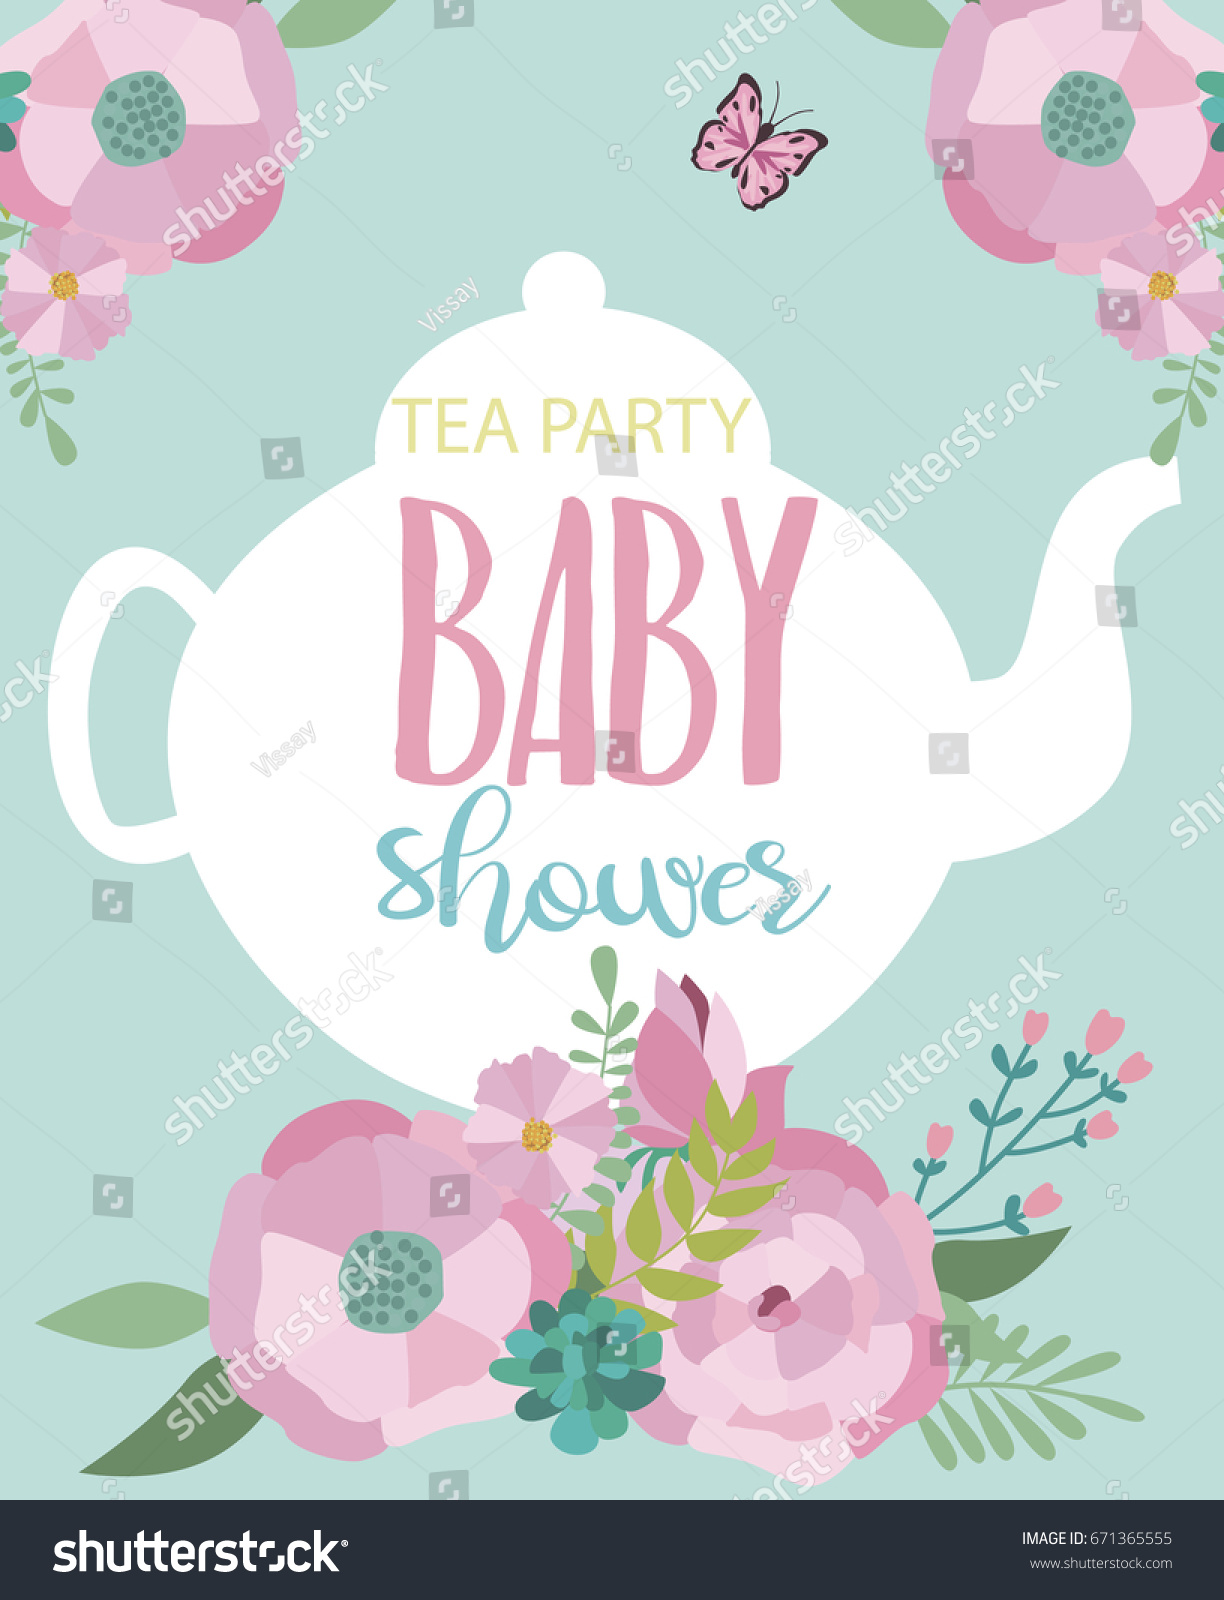 Invitation Card Baby Shower Tea Party Stock Vector 671365555 ...